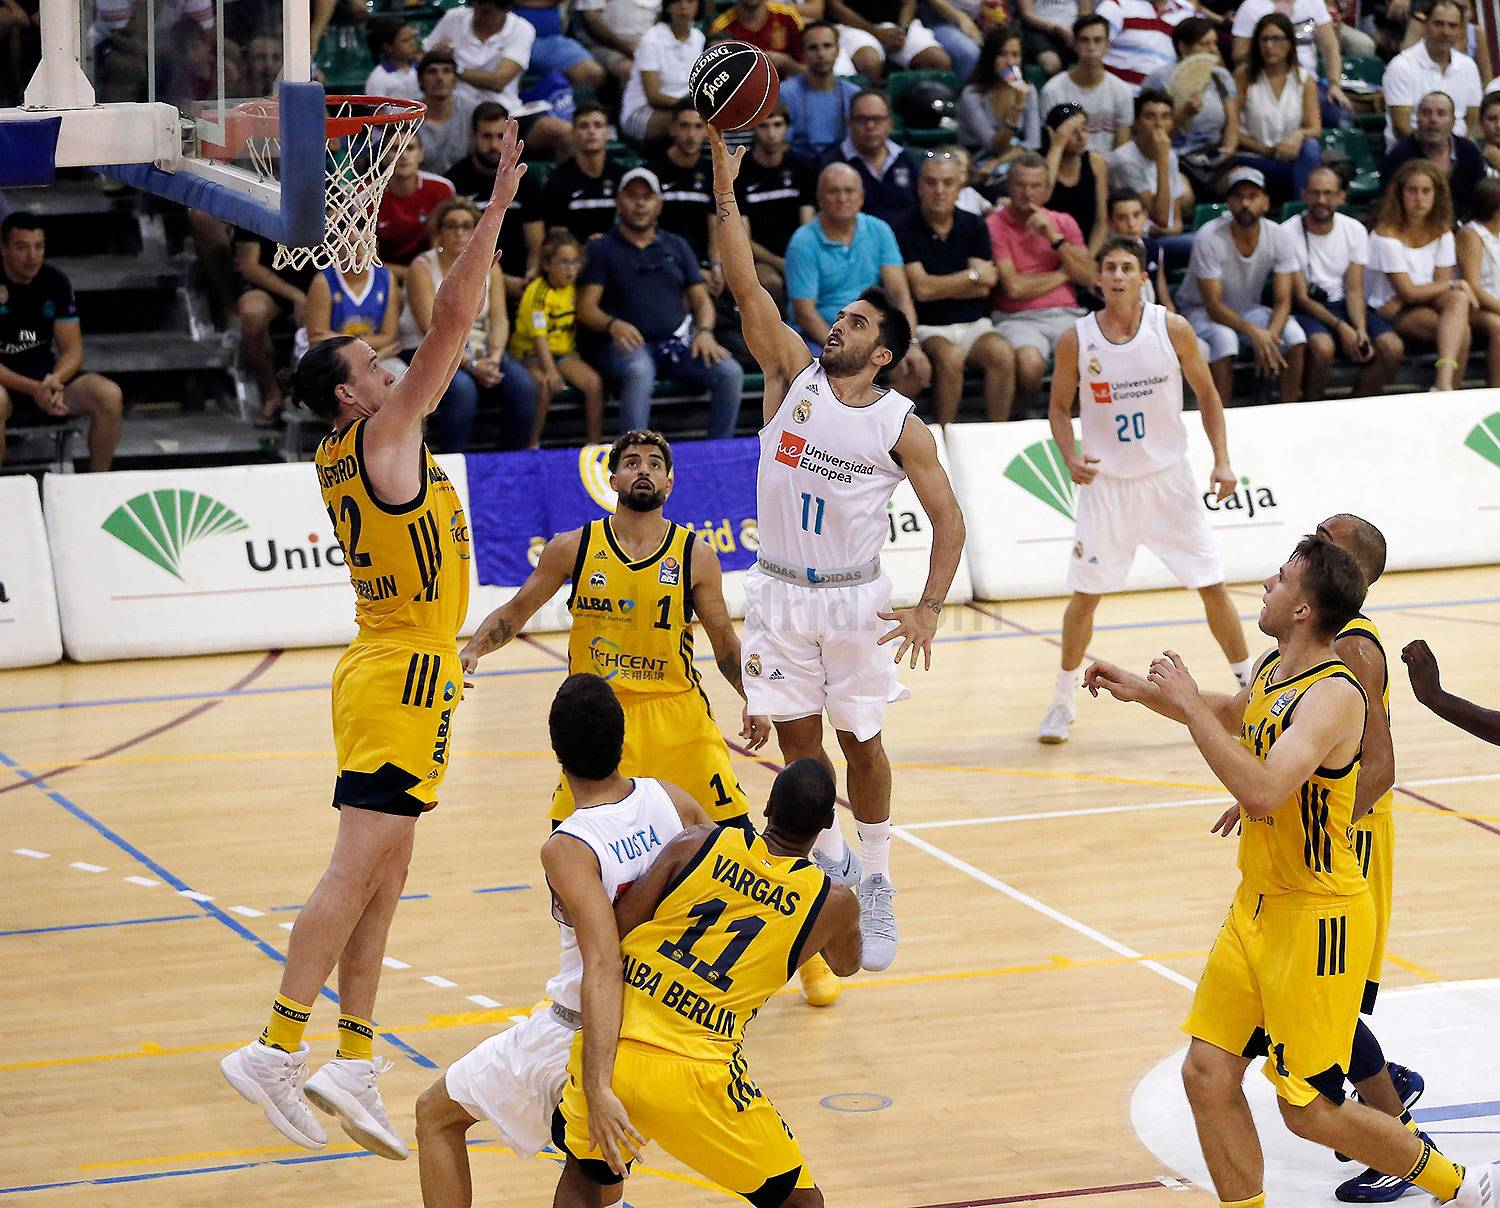 Real Madrid - Real Madrid - Alba Berlin - 08-09-2017